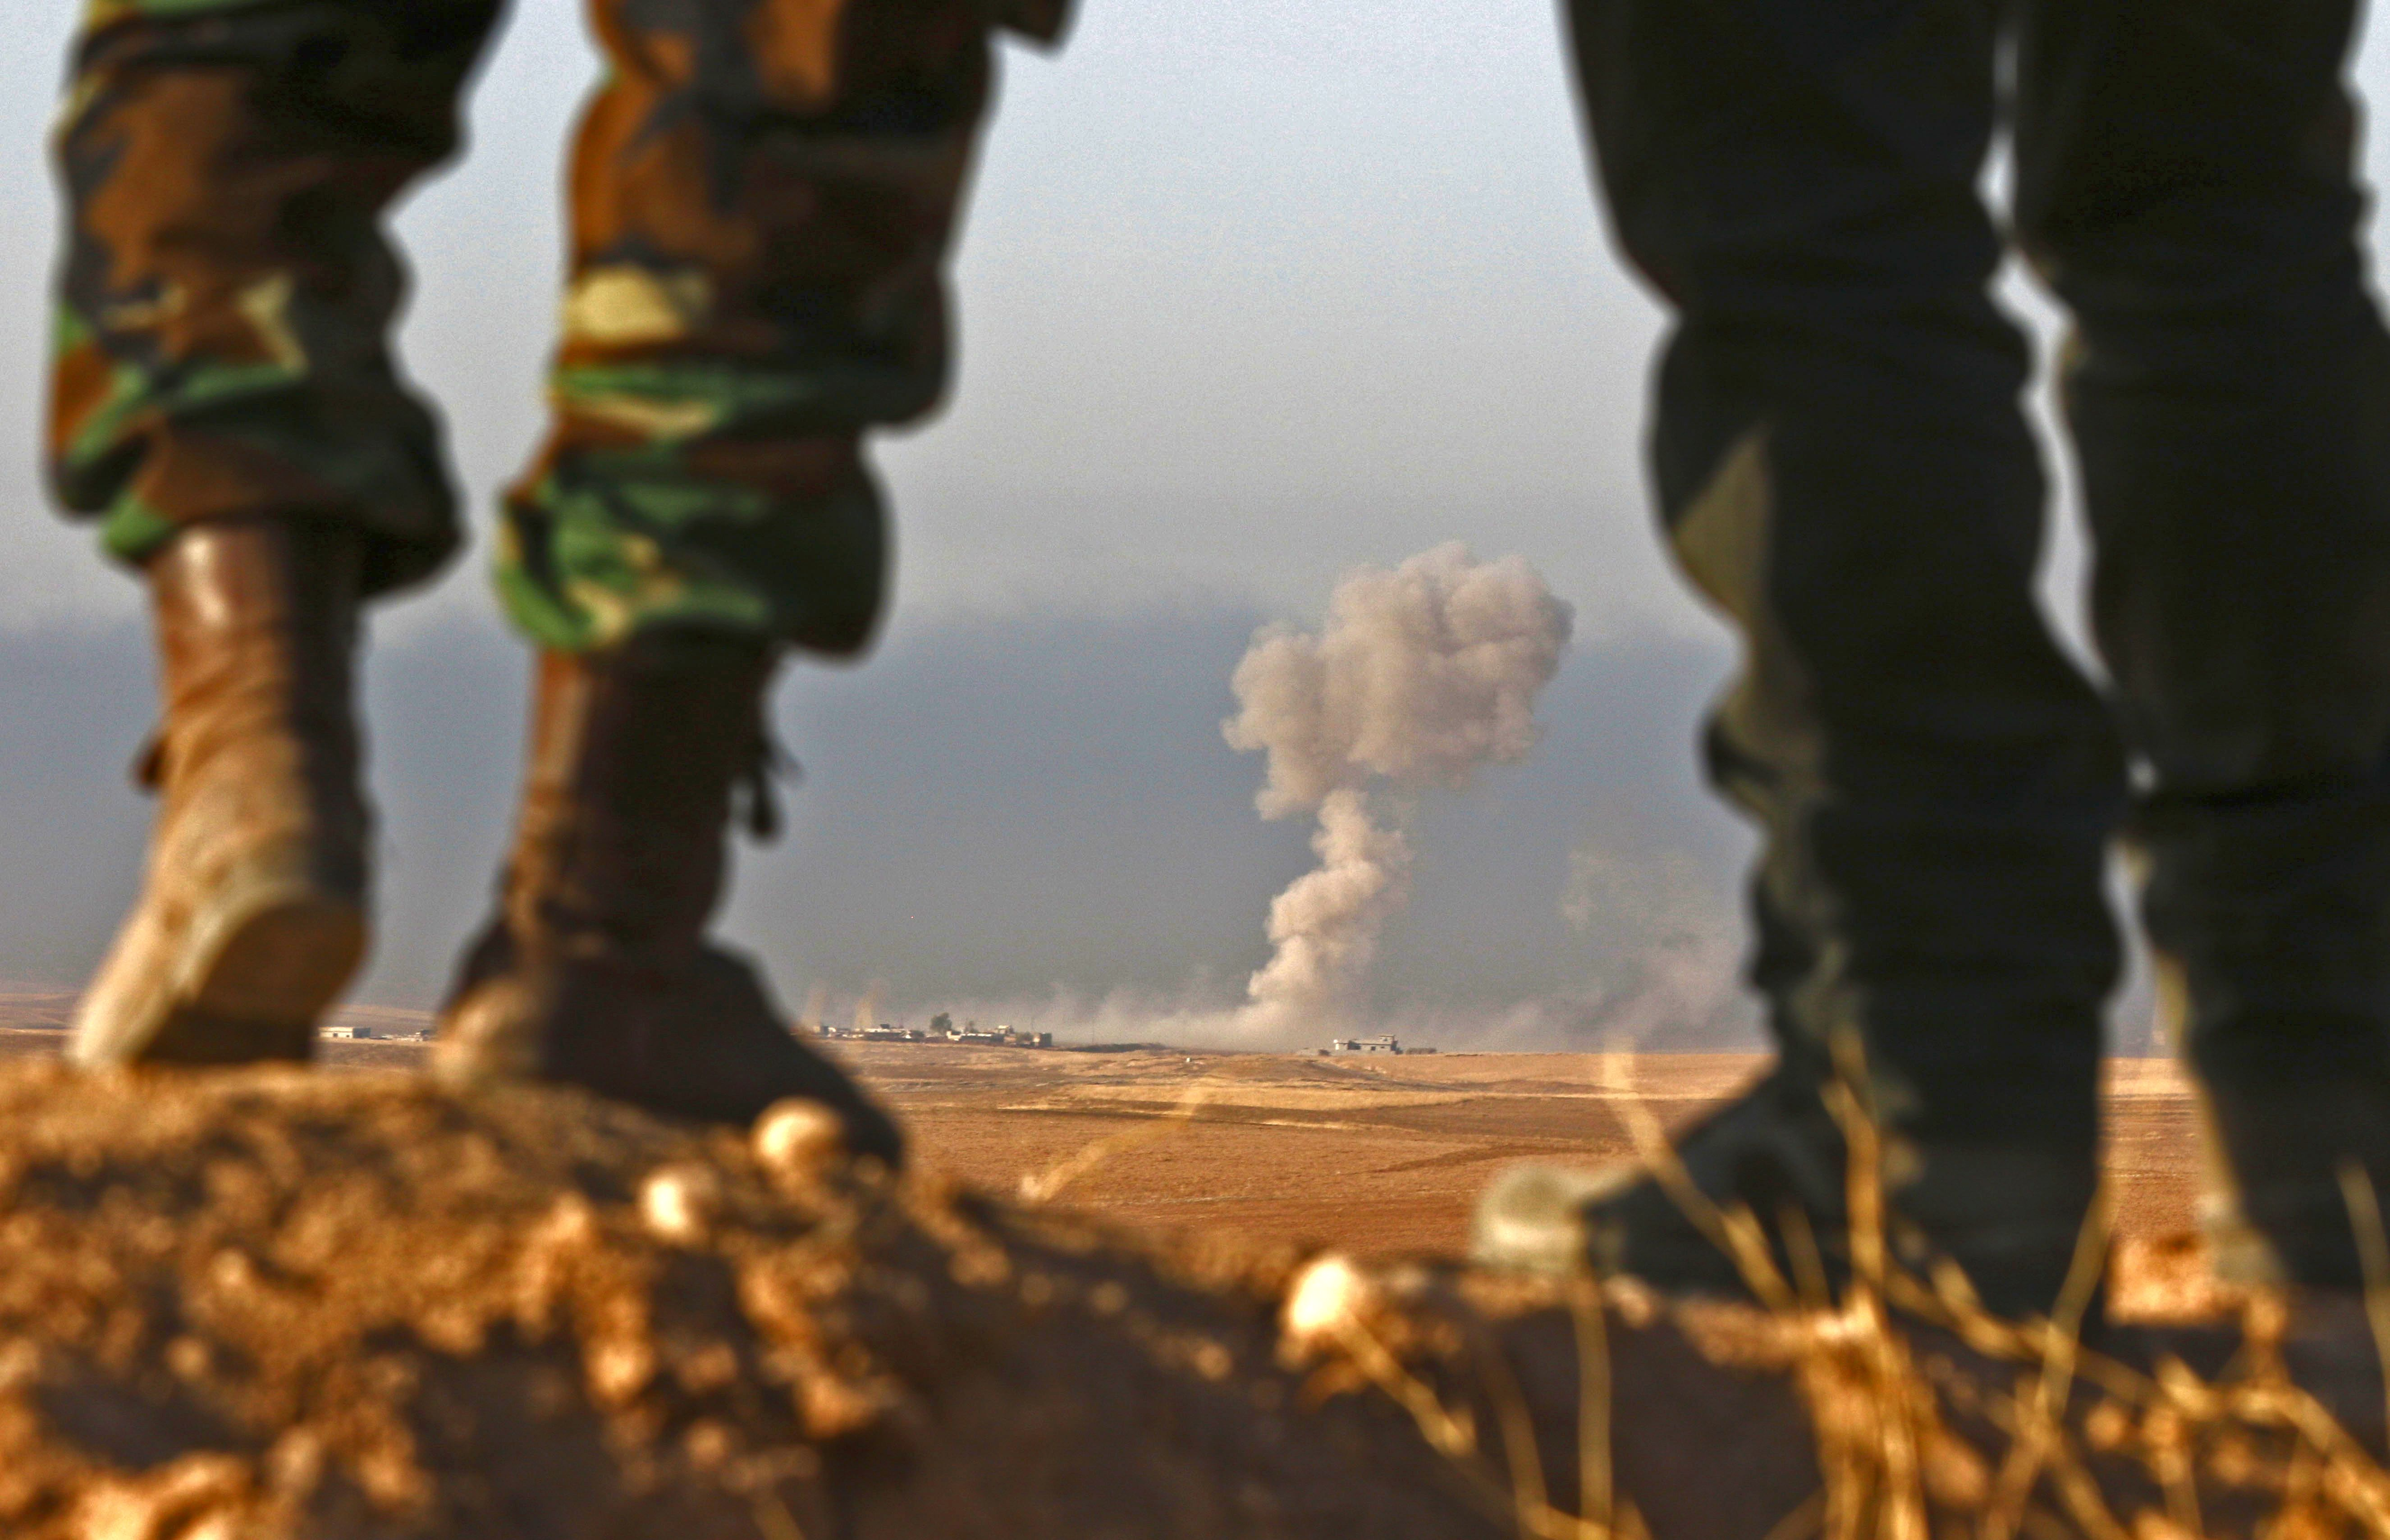 Iraqi Kurdish Peshmerga fighters stand in an area near the town of Bashiqa, some 25 kilometres north east of Mosul, as smoke billows on October 20, 2016, during an operation against Islamic State (IS) group jihadists to retake the main hub city. (Getty)